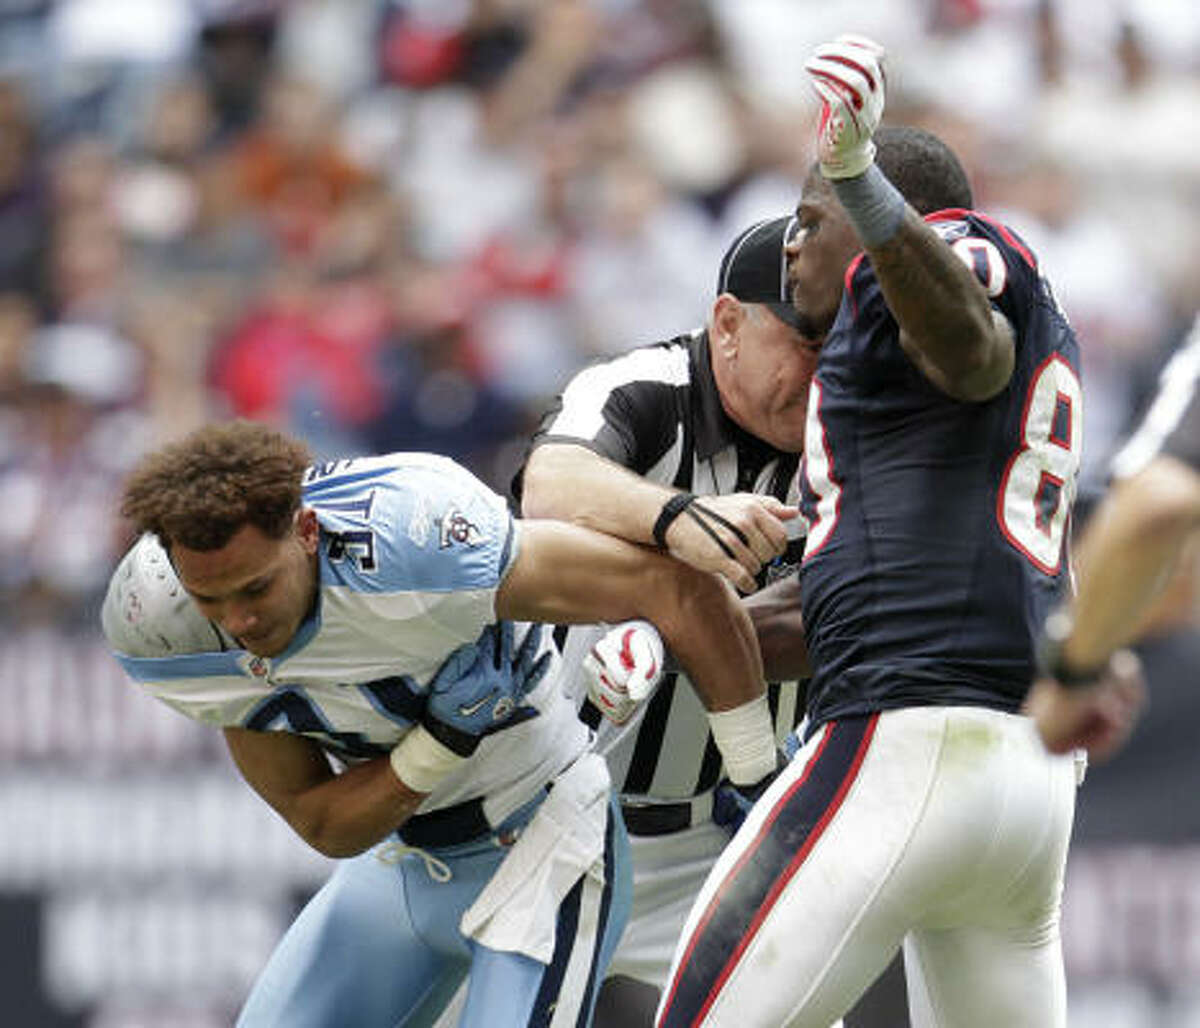 Cortland Finnegan: Why the hate? The Titans cornerback's dustups with Texans receivers Andre Johnson have quite a few fans wanting to join Johnson and throw a punch or two.